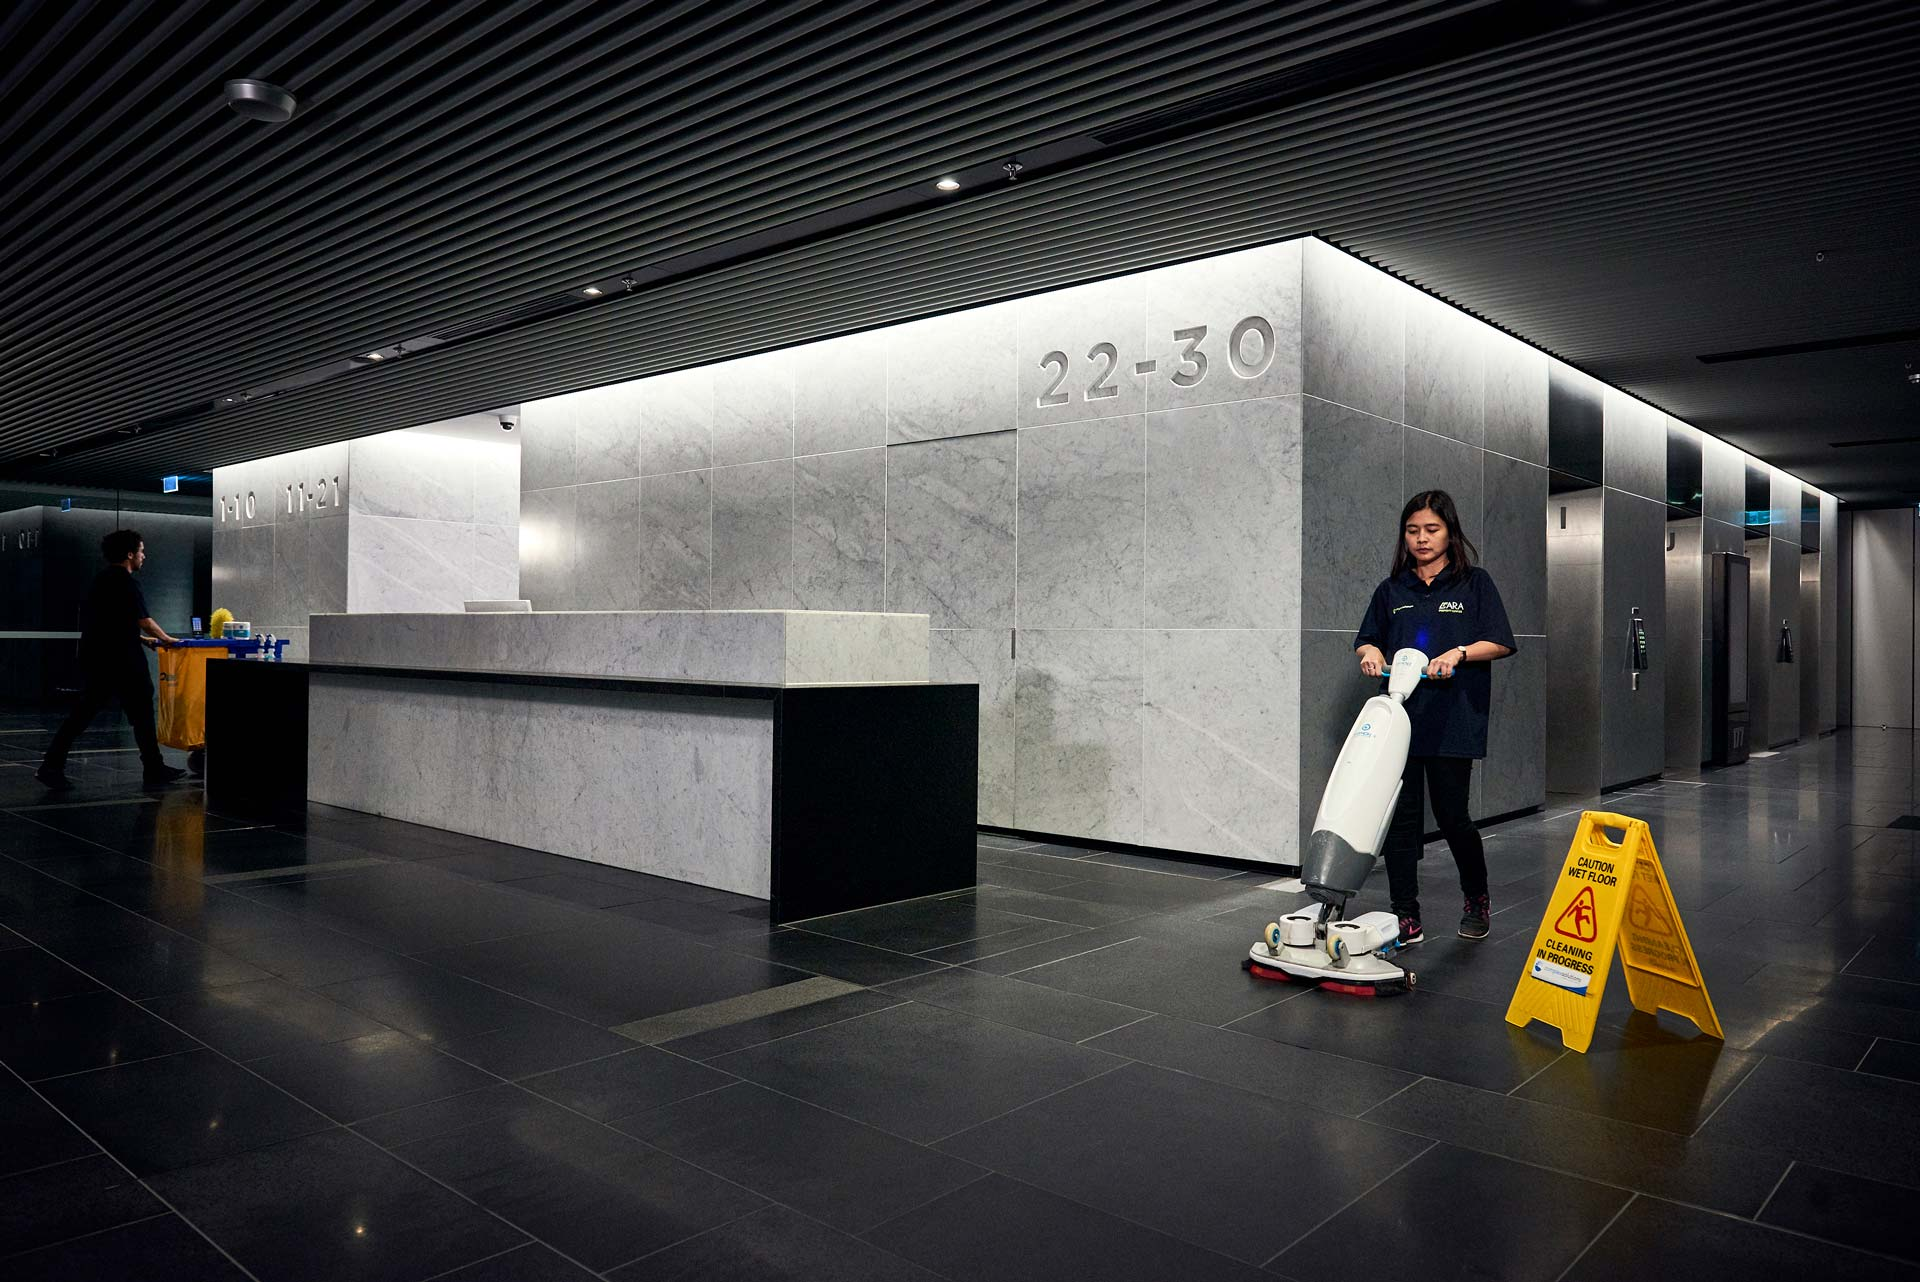 Commercial Cleaning and Corporate Cleaners in building lobby